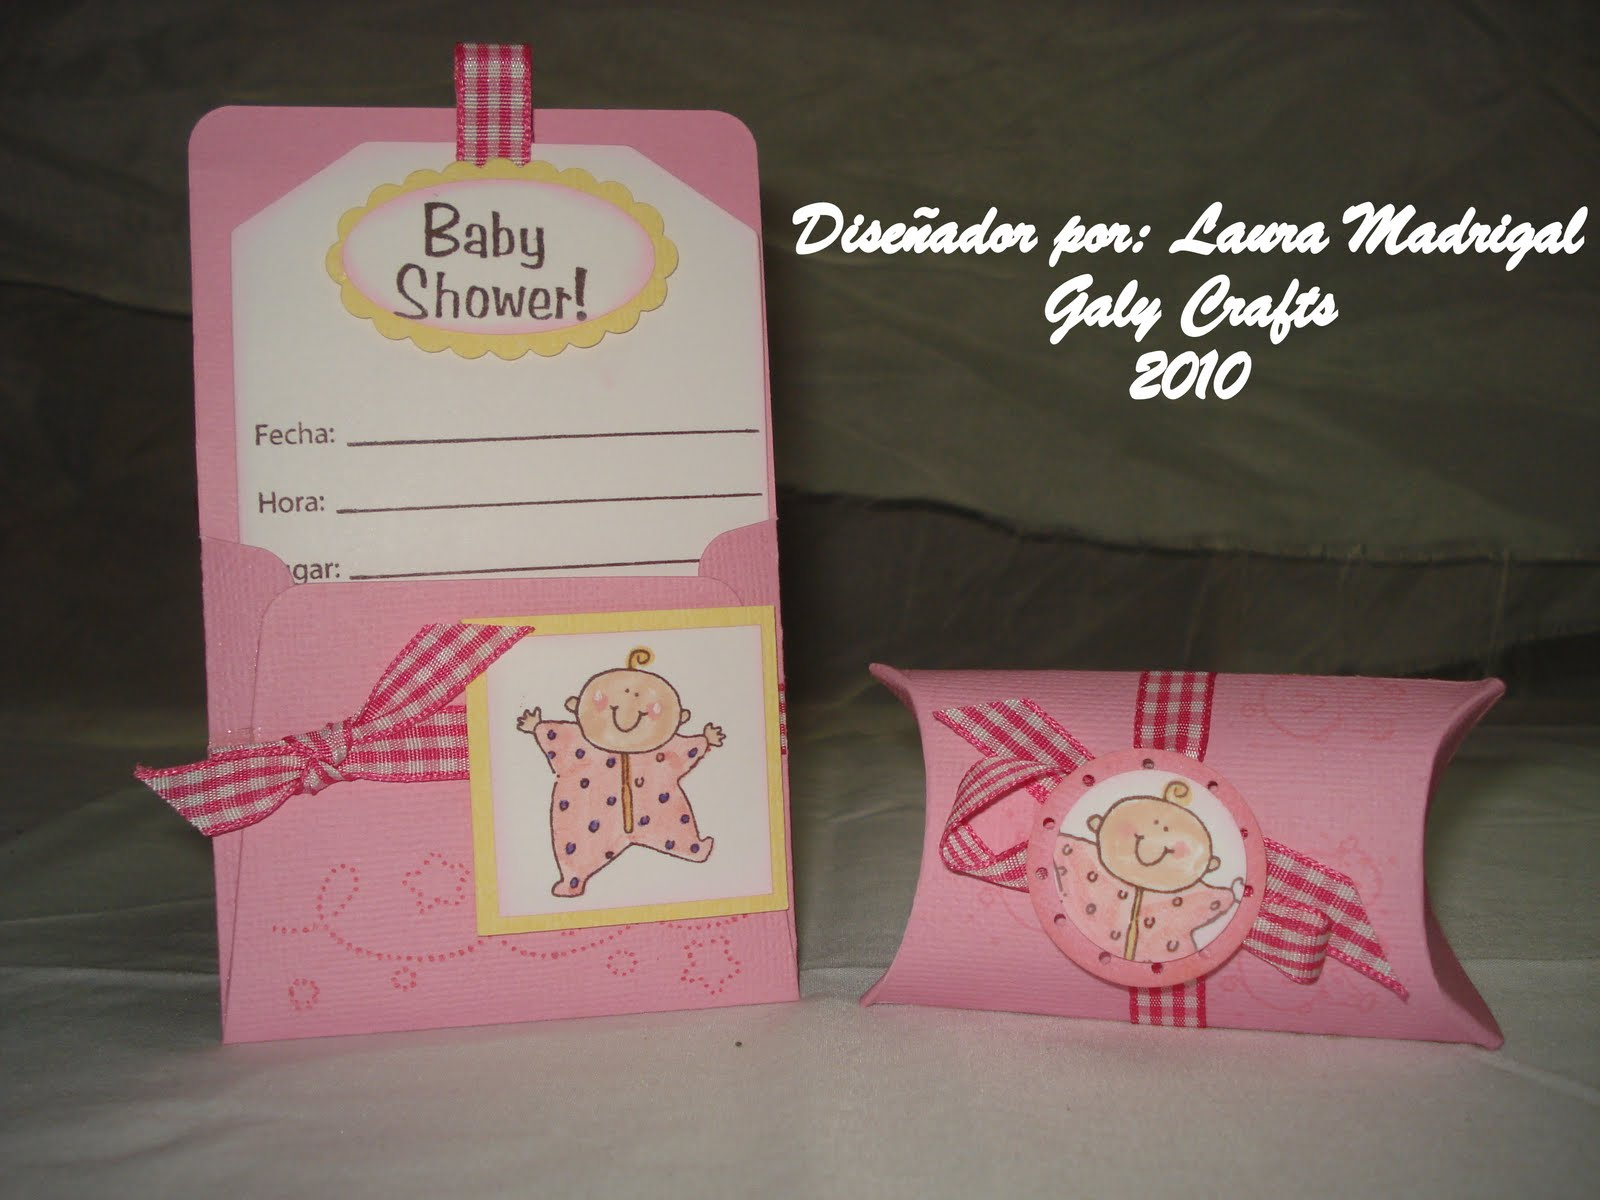 Tarjetas Boutique Galy Crafts: Tarjetas de Baby Shower para niña ...